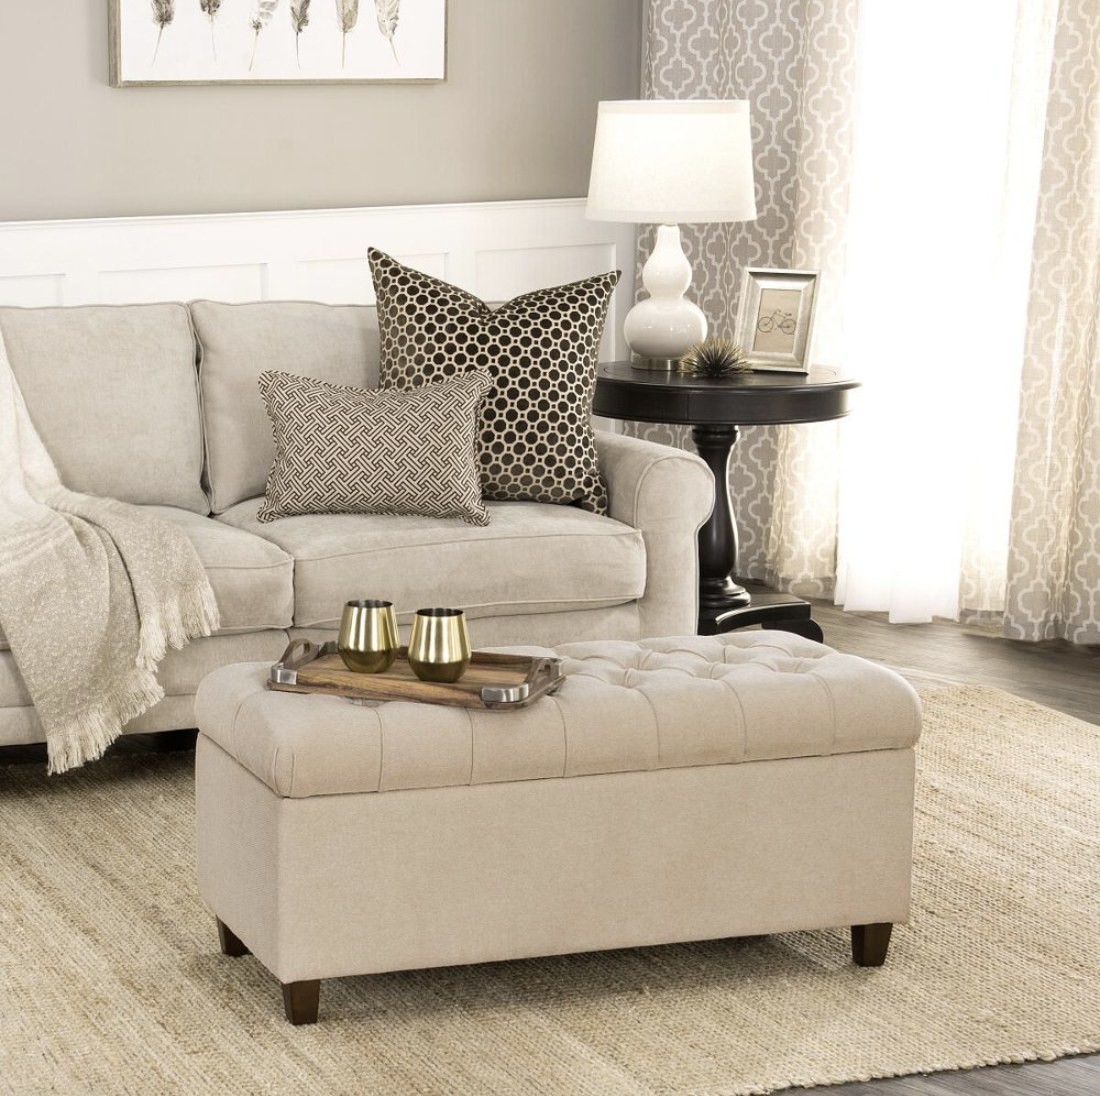 The beige bench in a living room